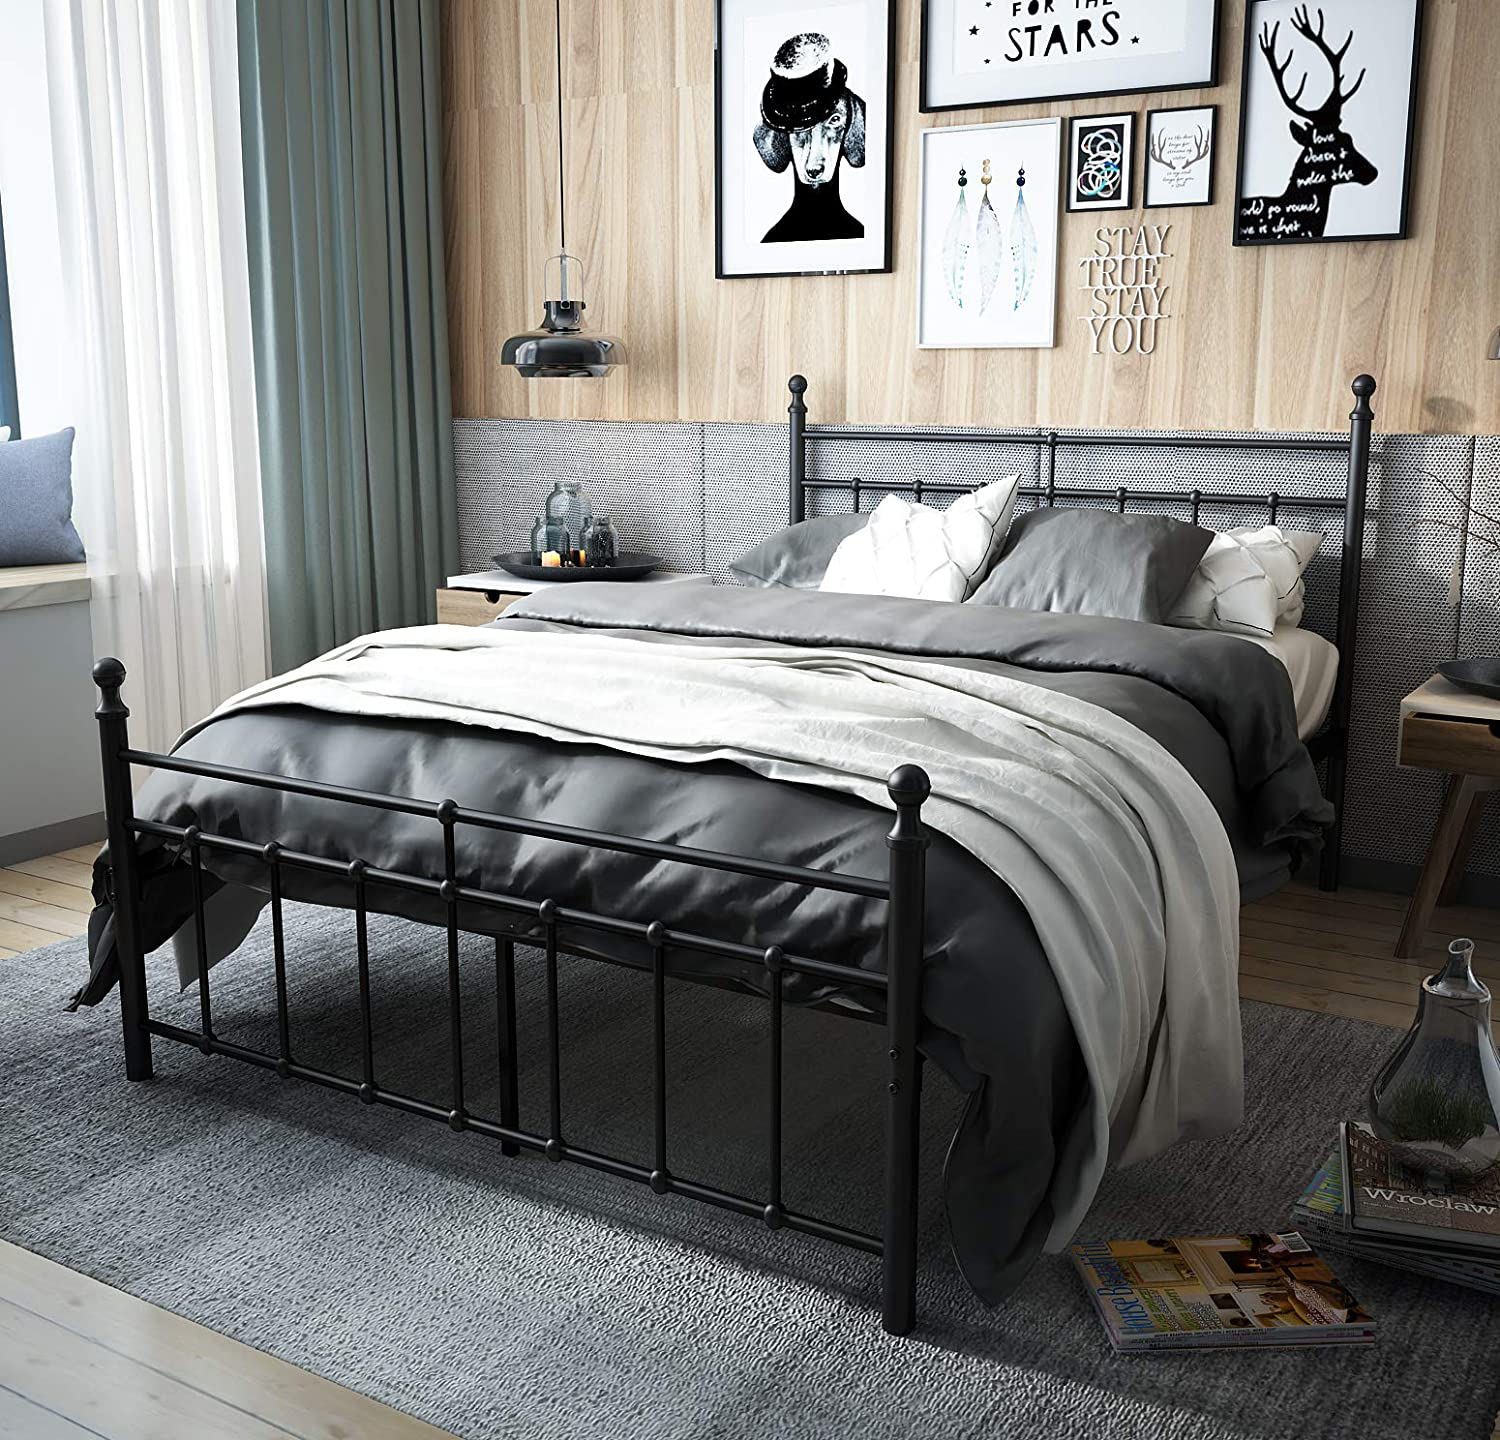 TEMMER Reinforced Metal Bed Frame Full Size with Headboard and Stable Metal Slats Boxspring Replacement Footboard Single Platform Mattress Base Full,Matte Black